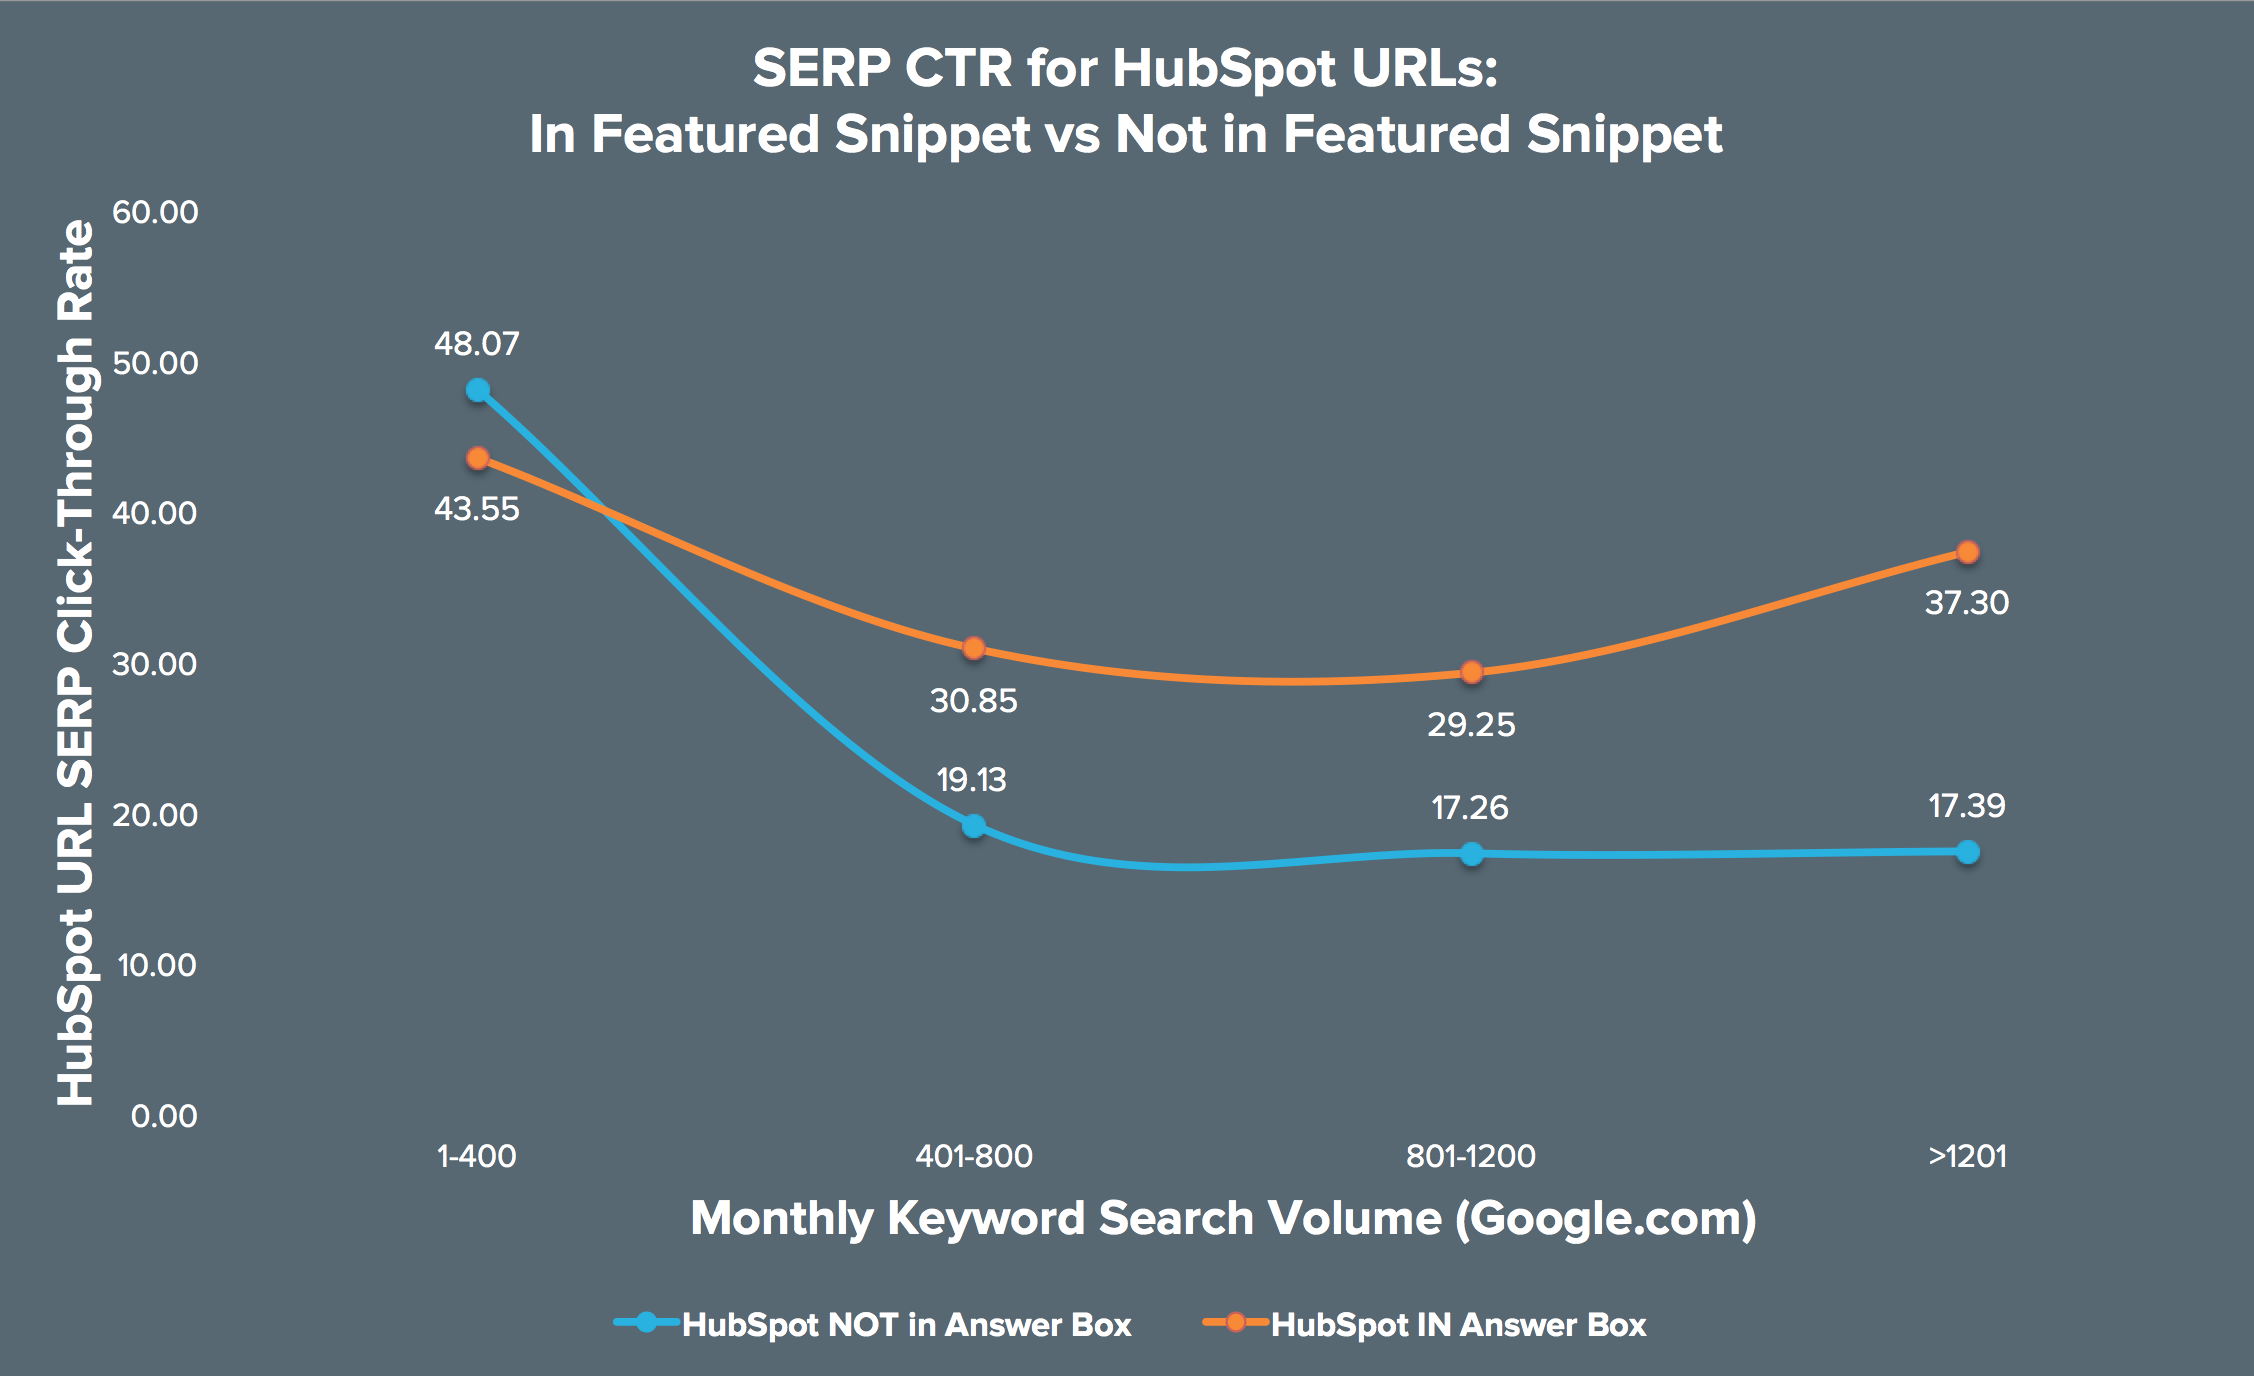 Chart: SERP CTR for Featured Snippet vs No Featured Snippet